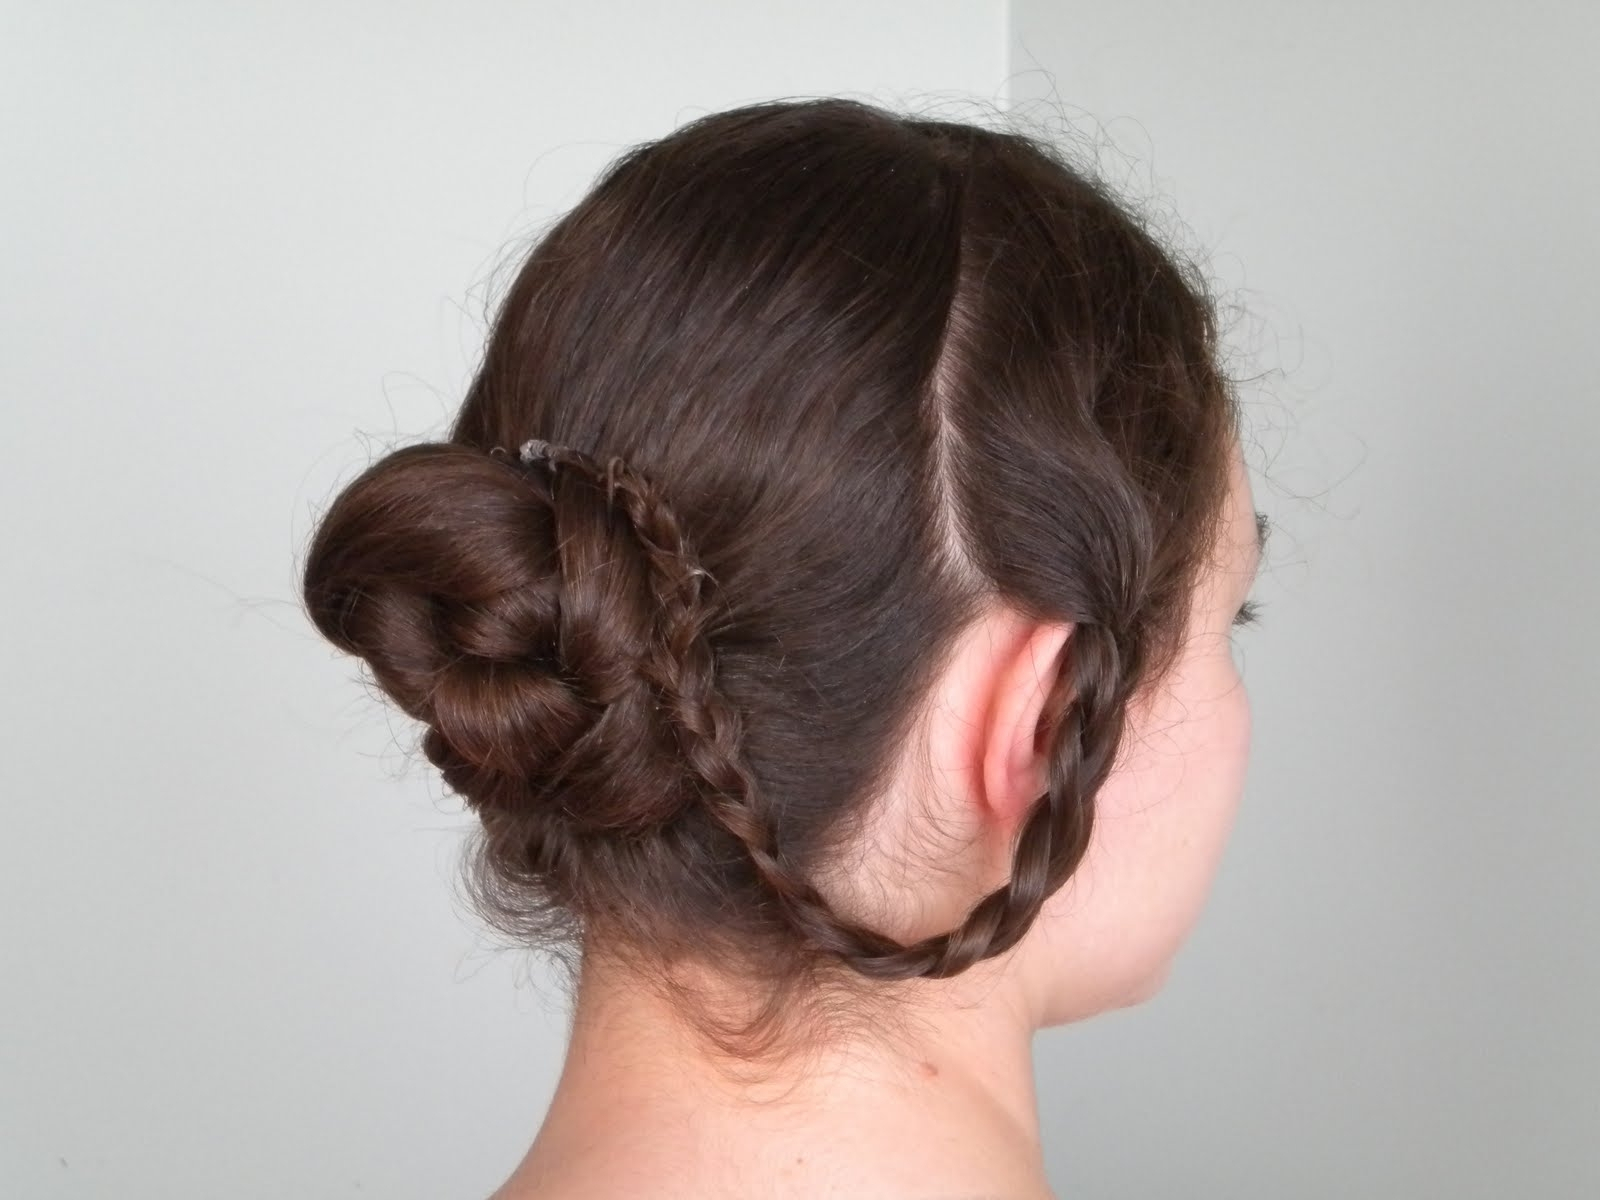 Most Popular Braided Victorian Hairstyles Throughout Hair Styles Braided Victorian Hairstyle How To Style Of Braids (View 7 of 15)